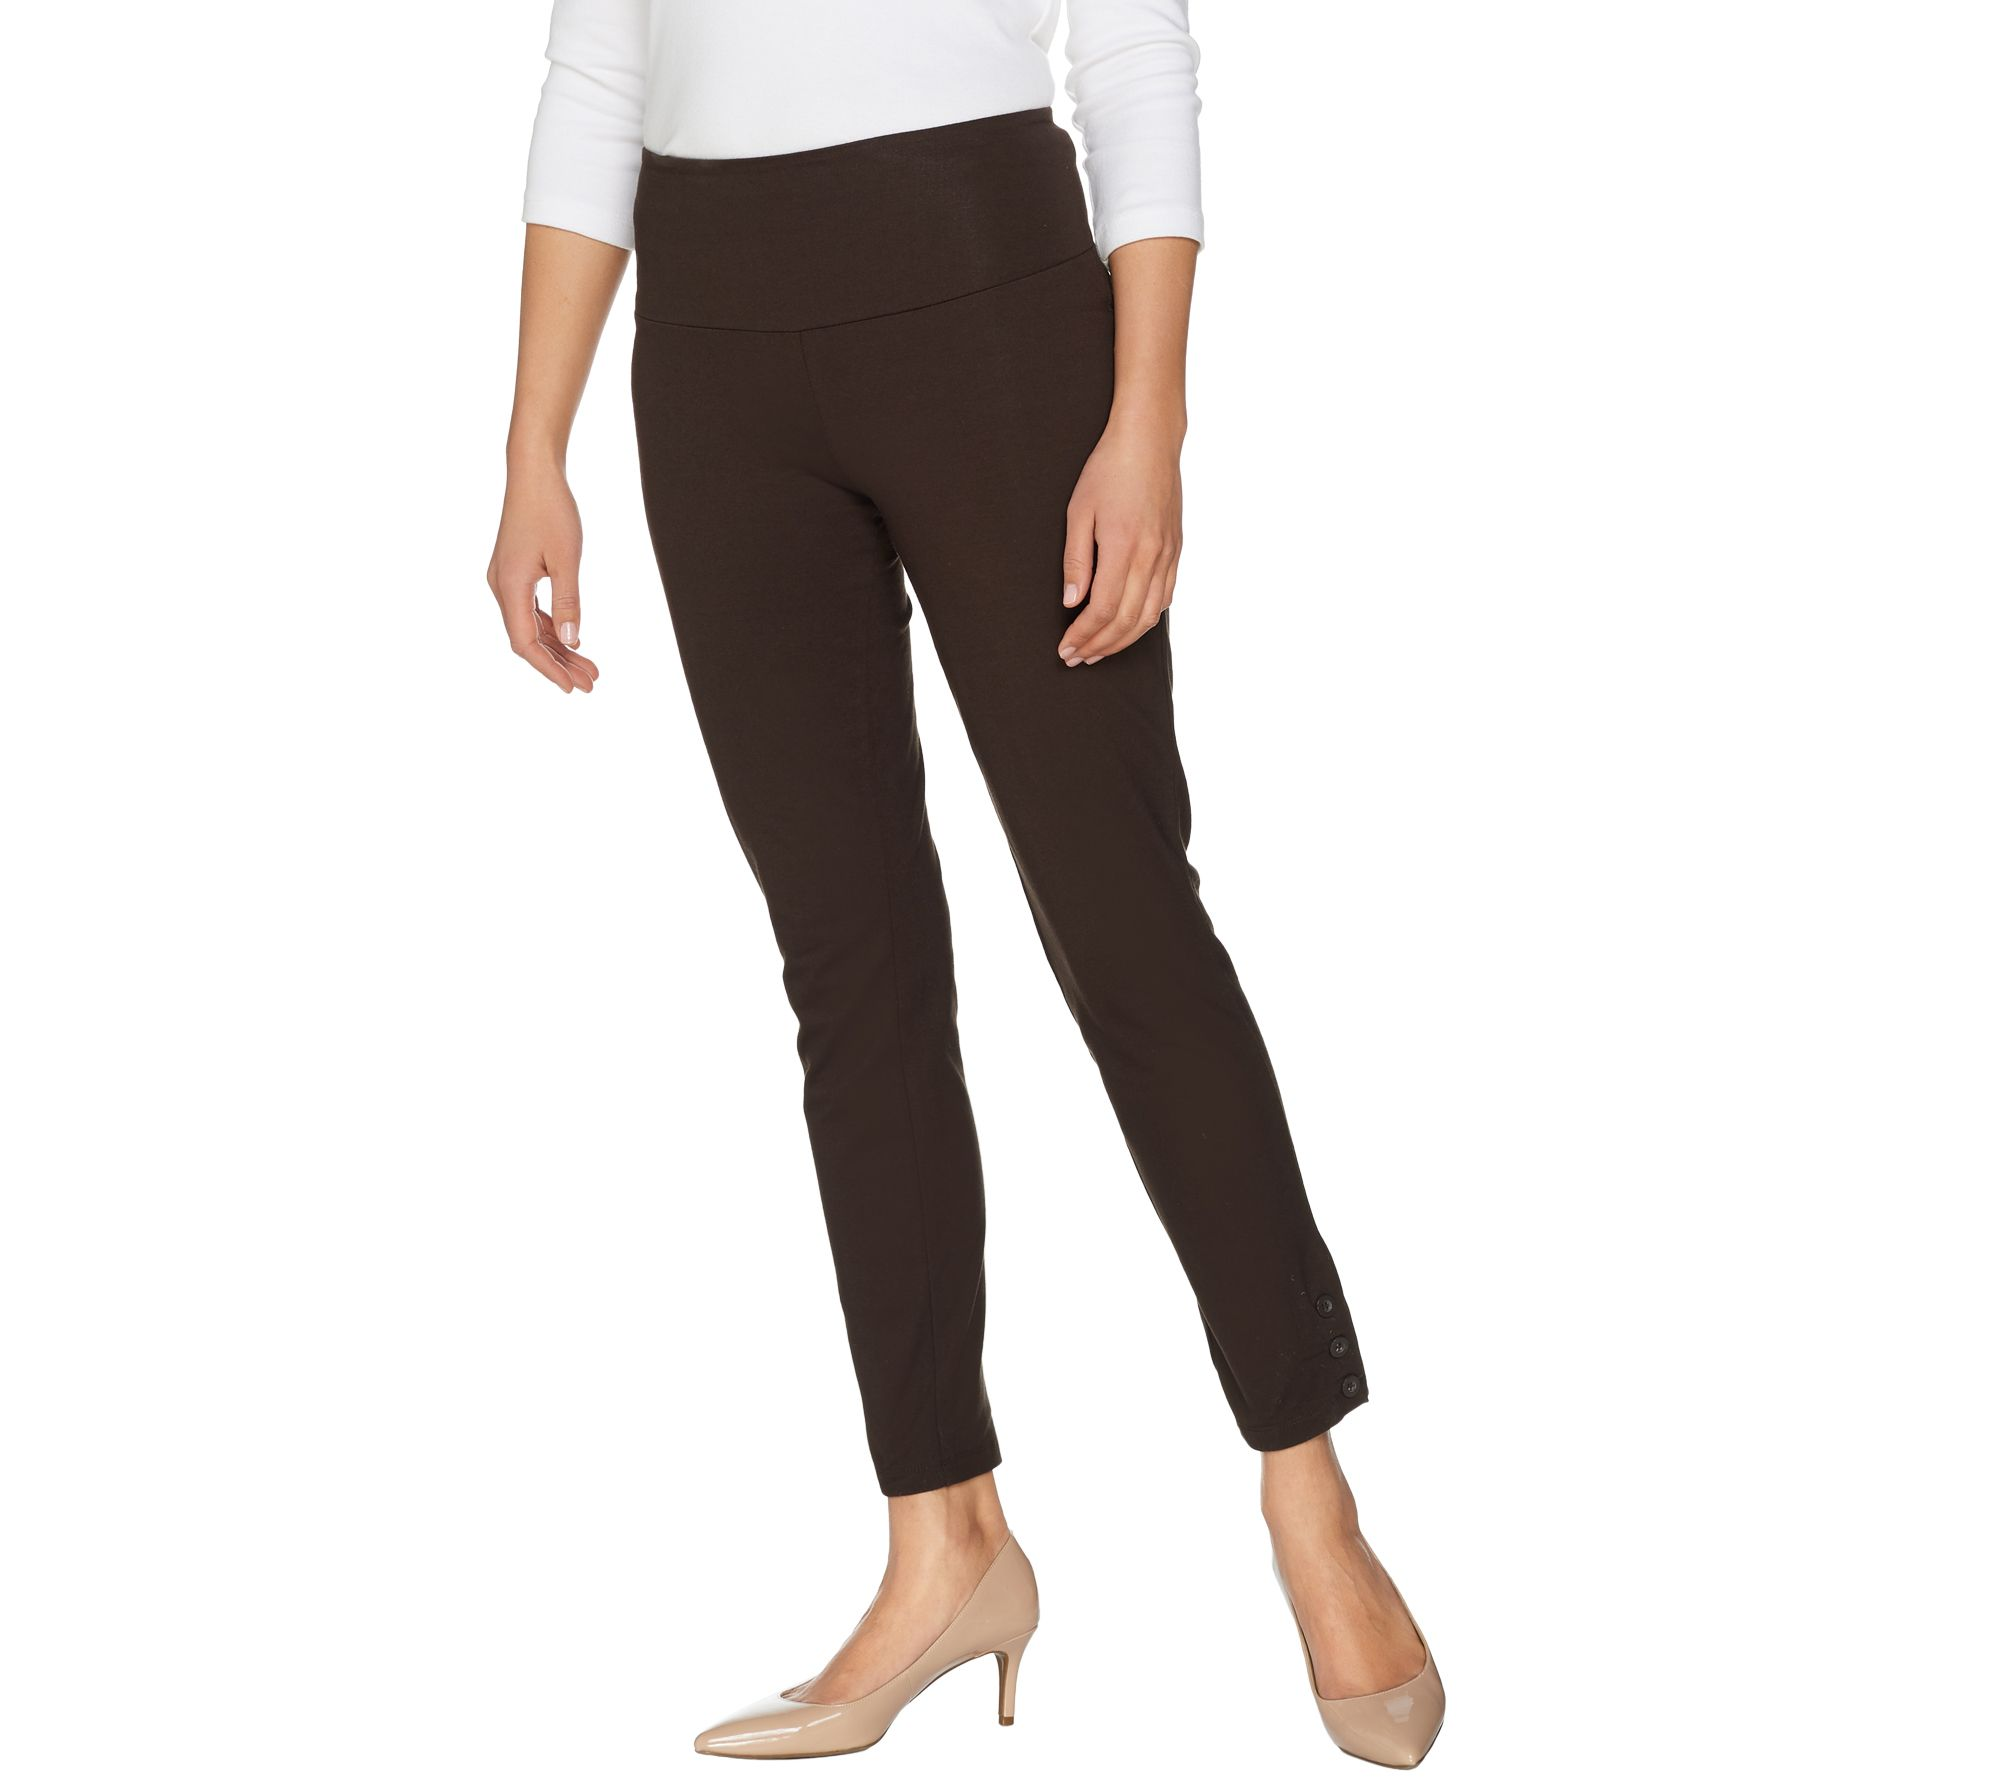 Quotes About Love Relationships: Women With Control Regular Tummy Control Ankle Pants W